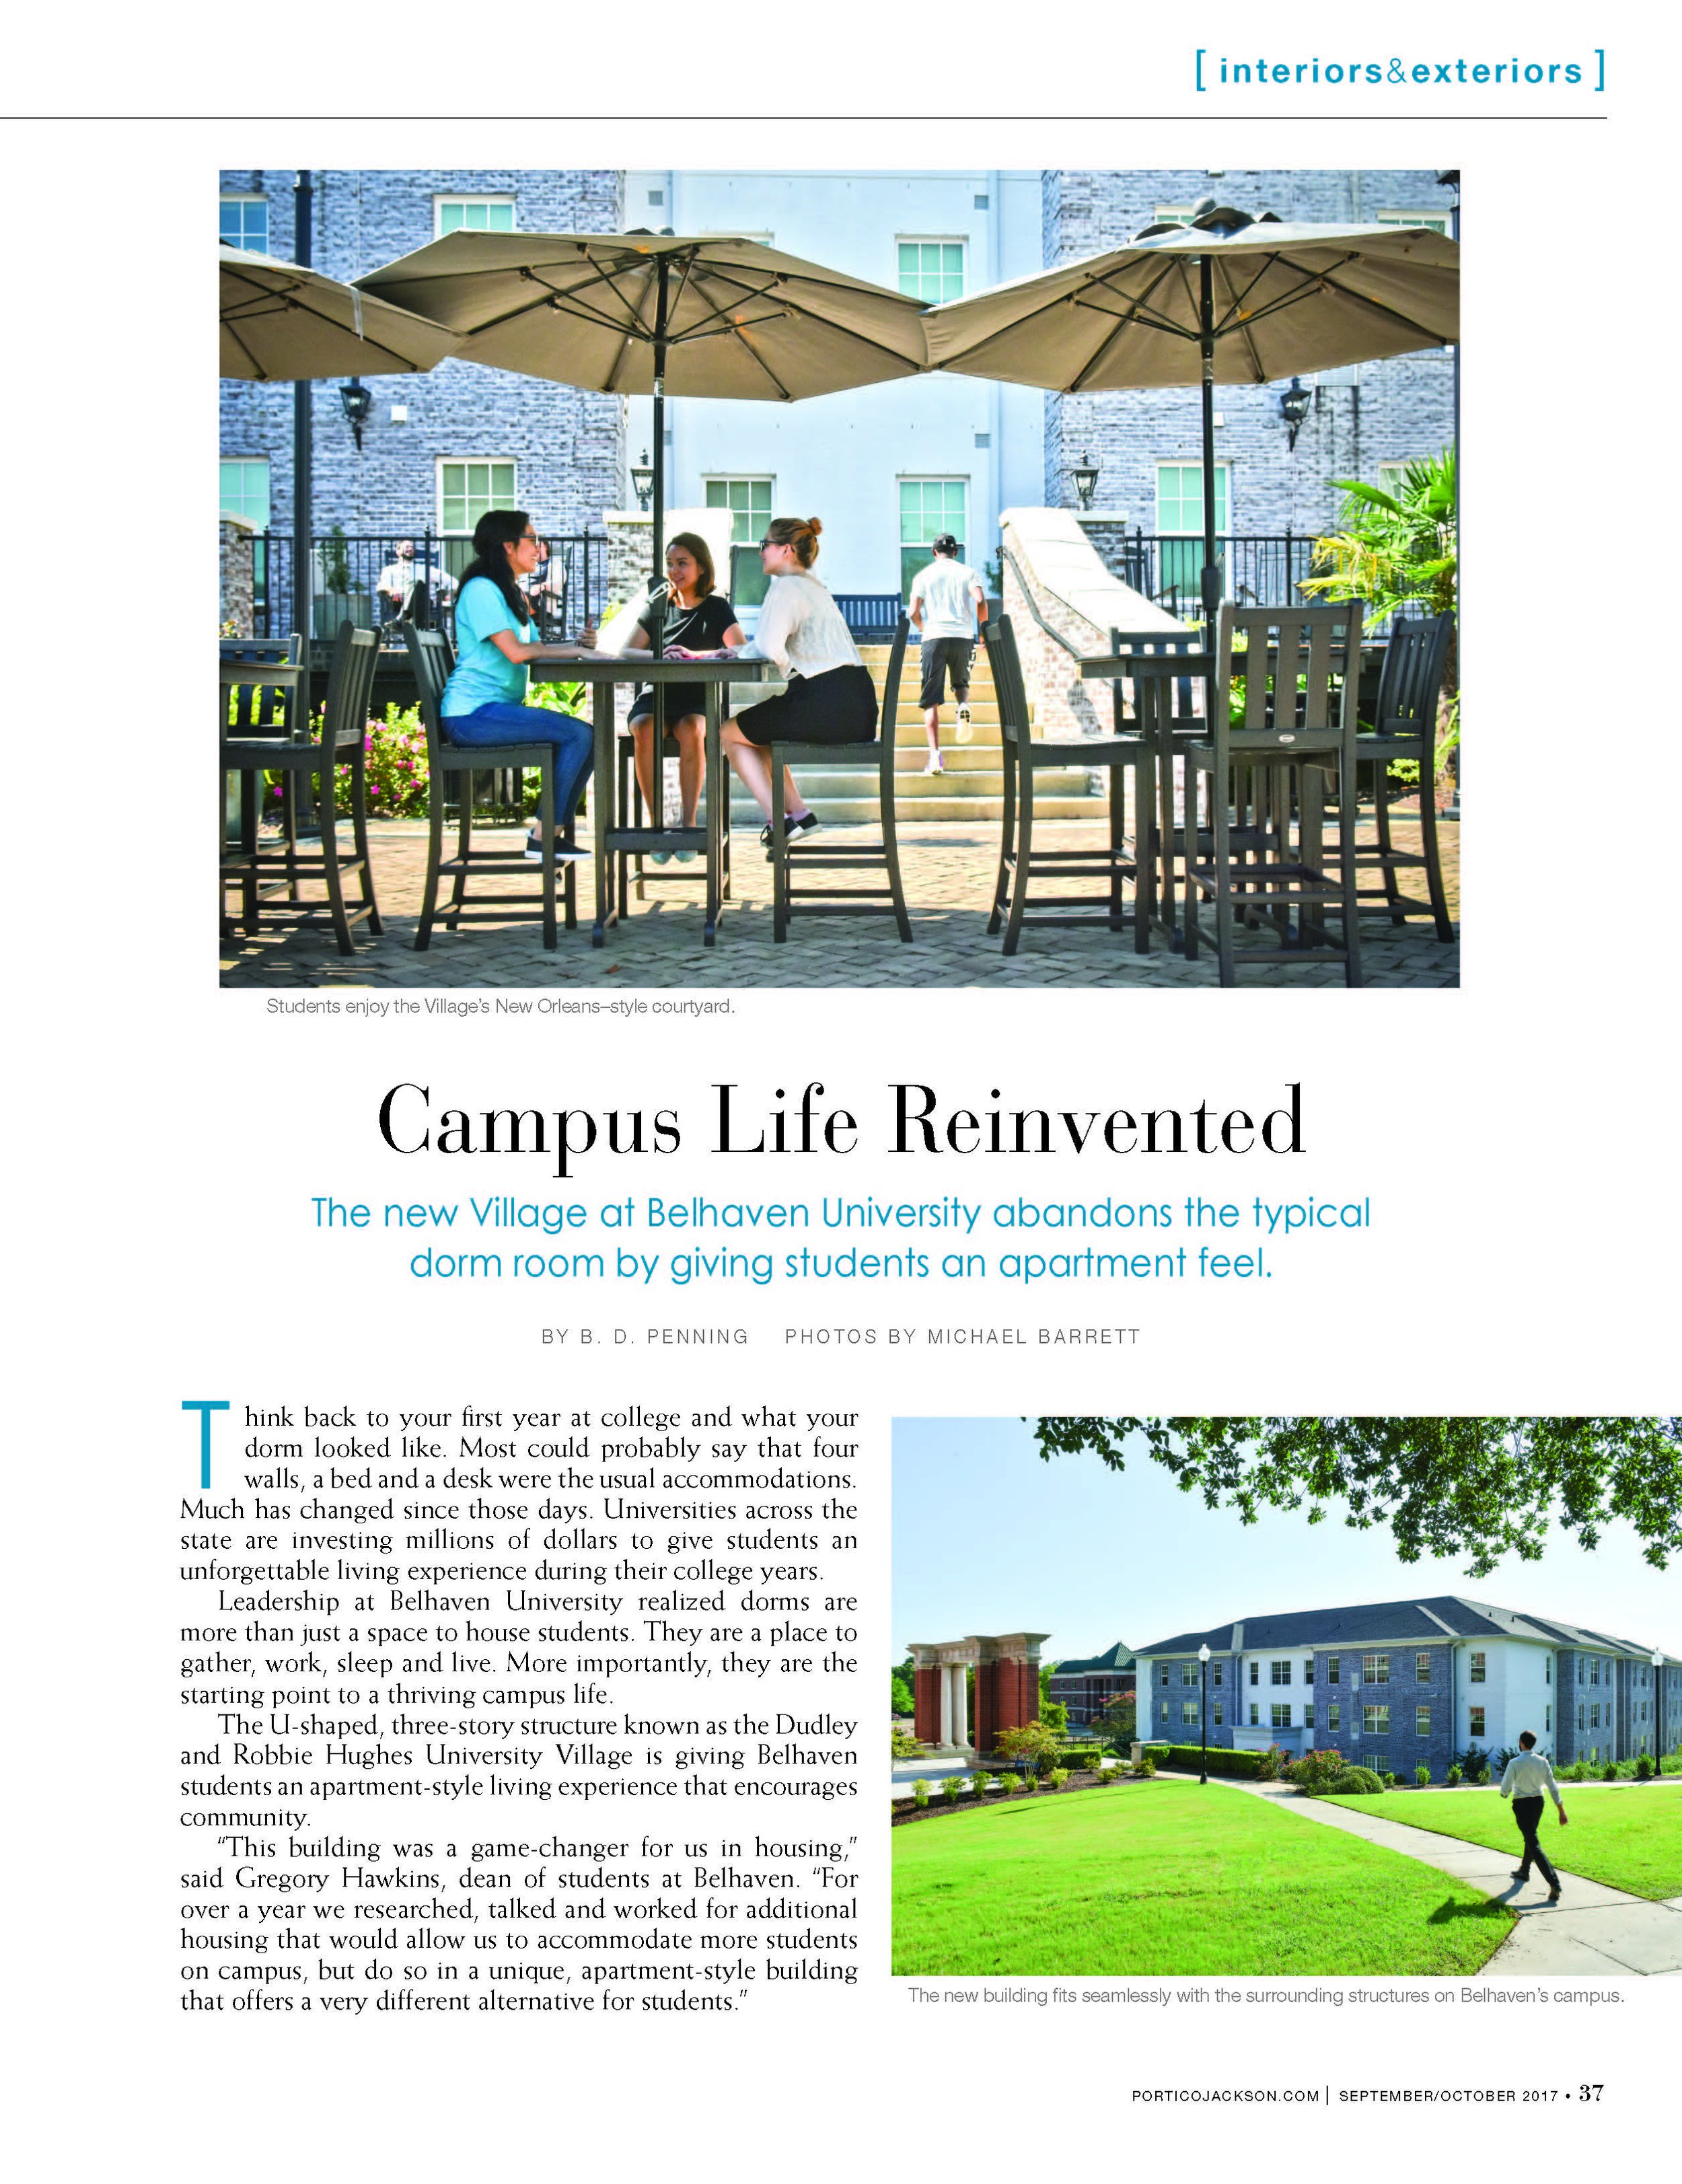 Portico article on University Village 2.jpg